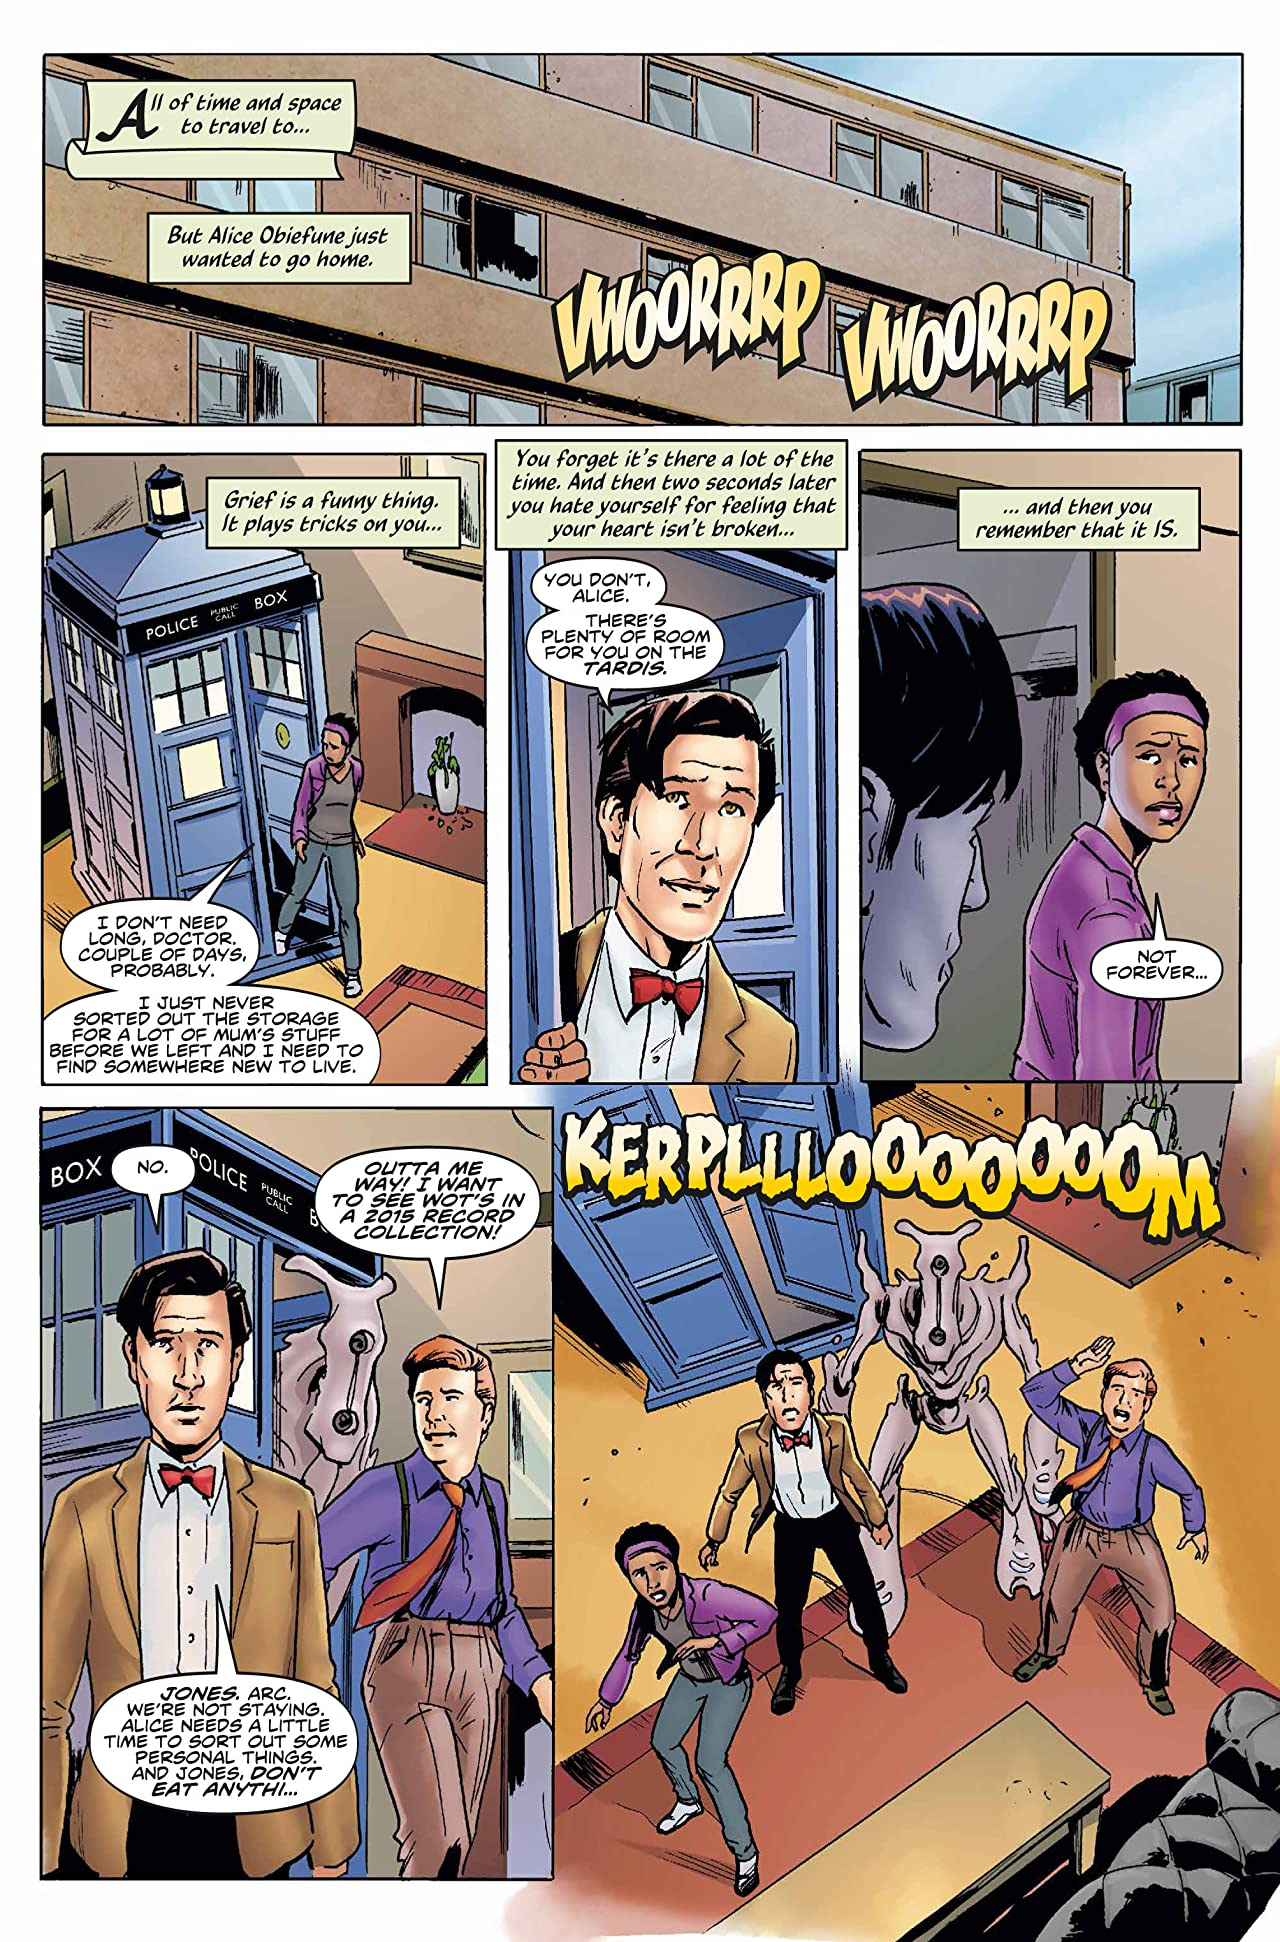 Doctor Who: The Eleventh Doctor No.7